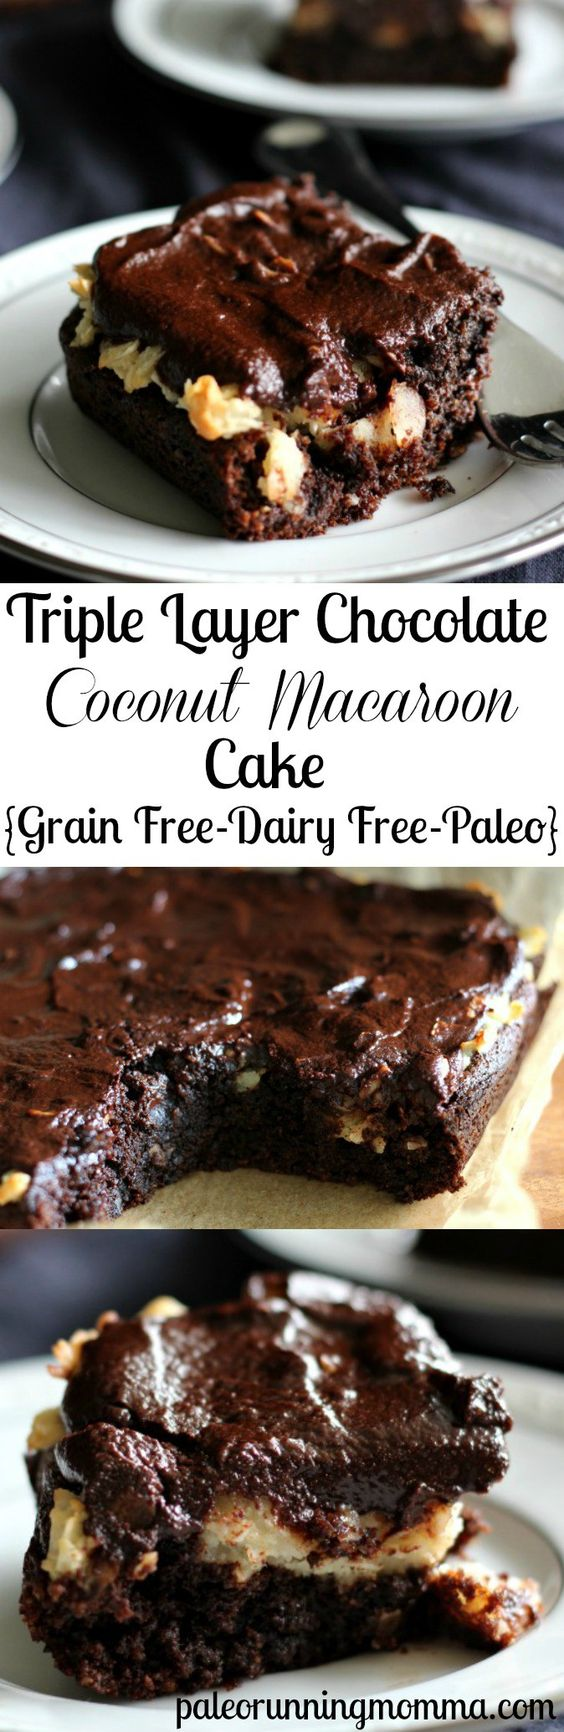 triple-layer-chocolate-coconut-macaroon-cake-paleo-vegetarian-gluten-free